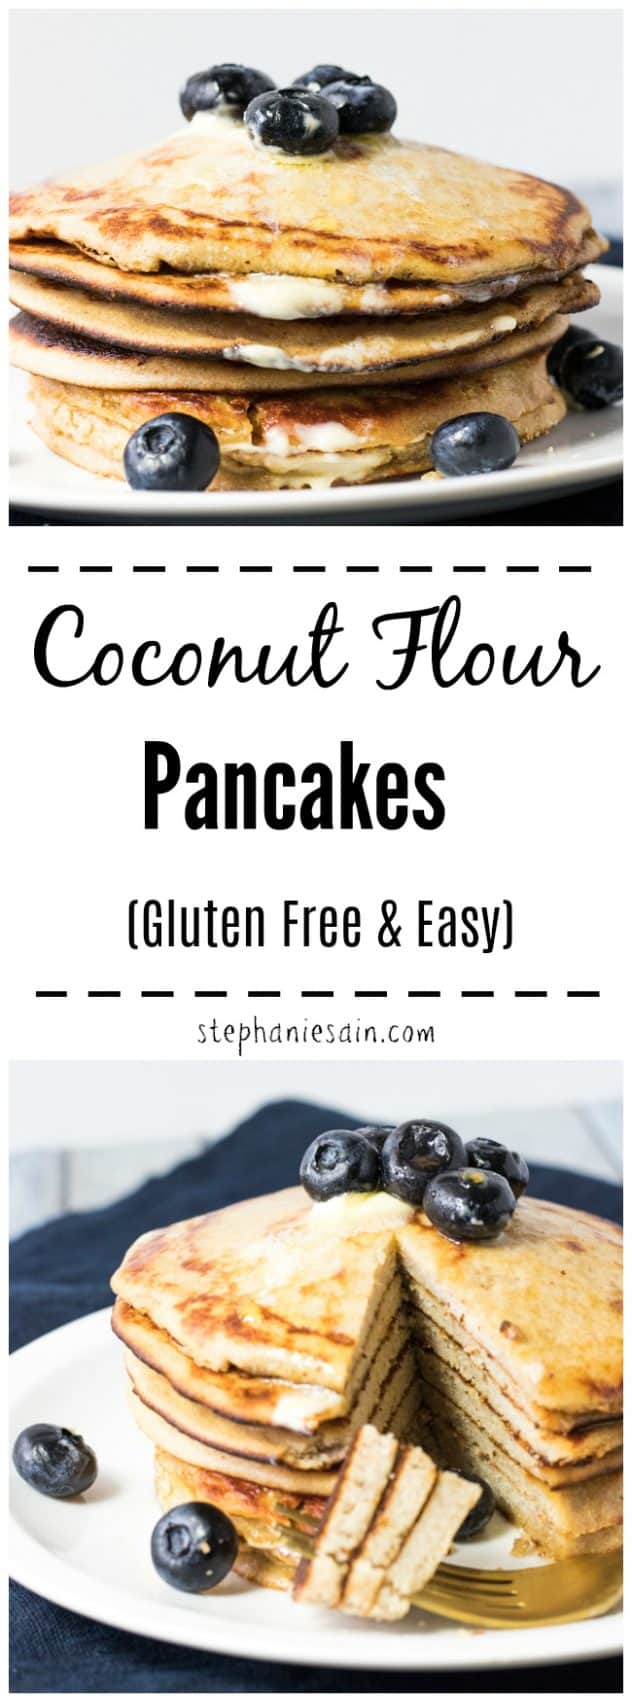 This Coconut Flour Pancakes are super easy to make, flavorful and loaded with healthy fats and fiber. Perfect way to start your day and will easily hold you till lunch. Great also served cold as a snack. Flavorful enough to eat plain or can be topped with all your favorites. Gluten Free.